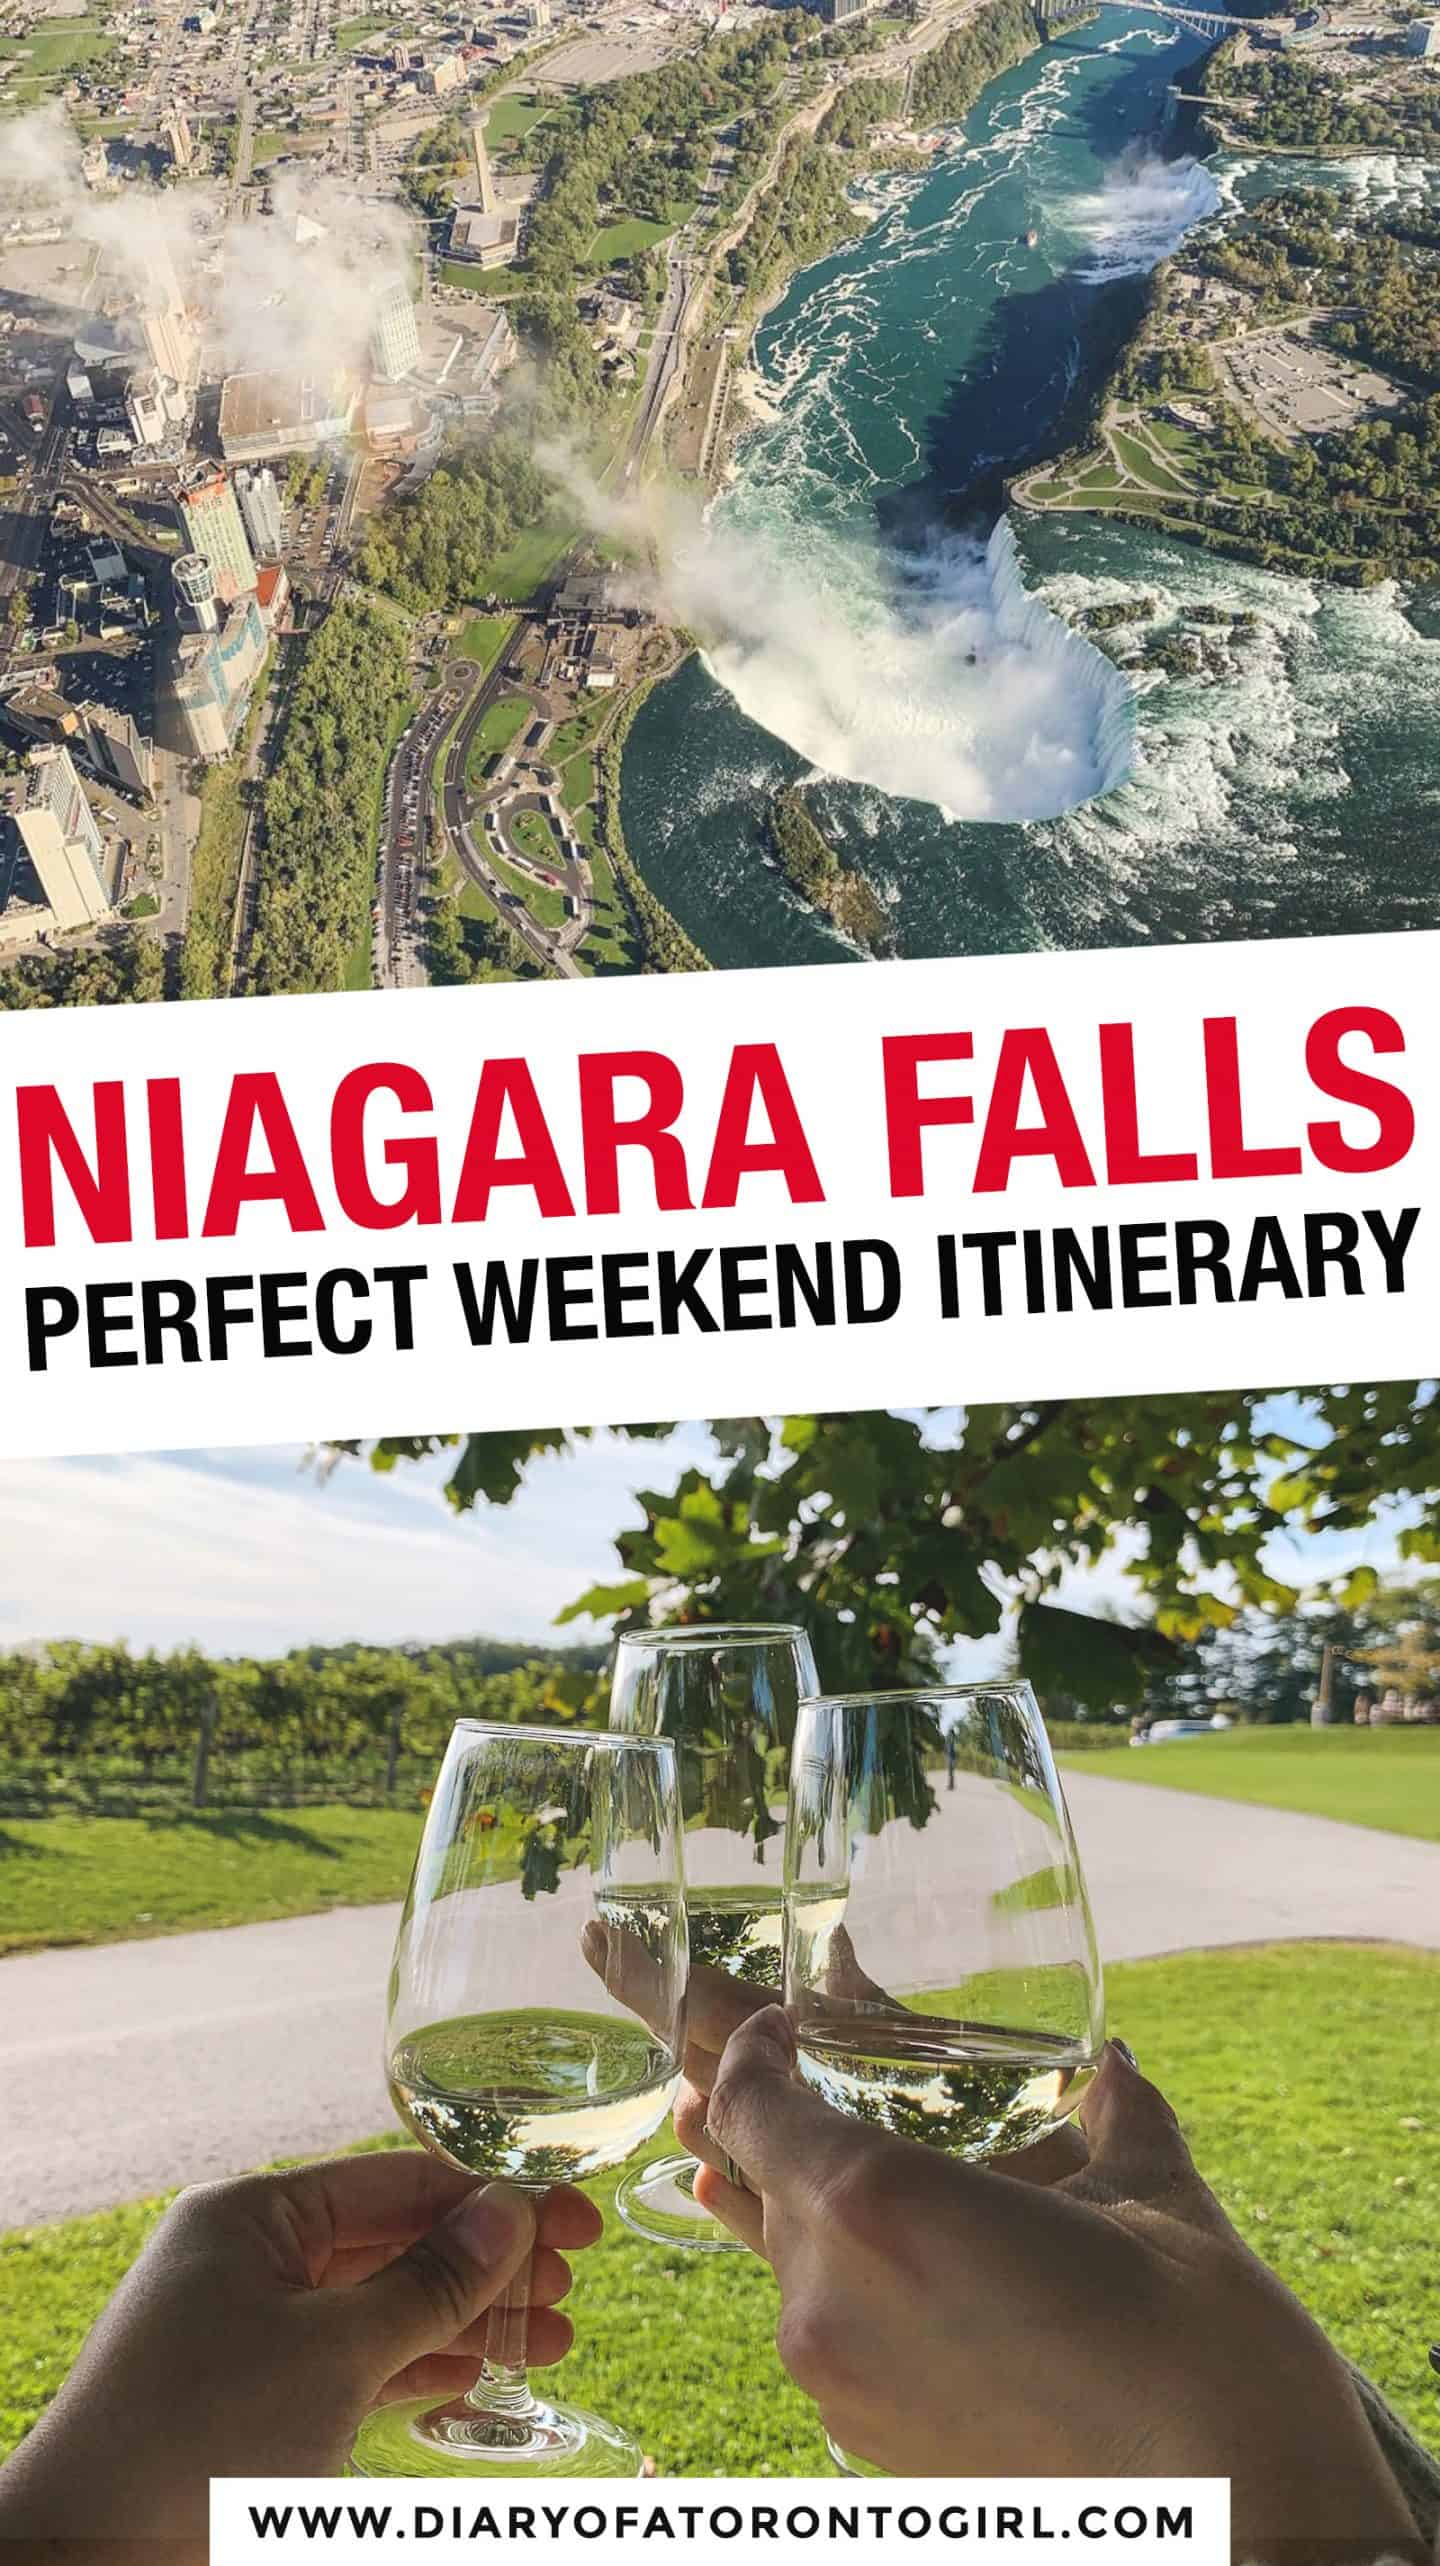 Planning a visit to Niagara Falls on the Canadian side? Here's the ultimate travel itinerary and guide on how to spend the perfect weekend in Niagara Falls, Ontario!